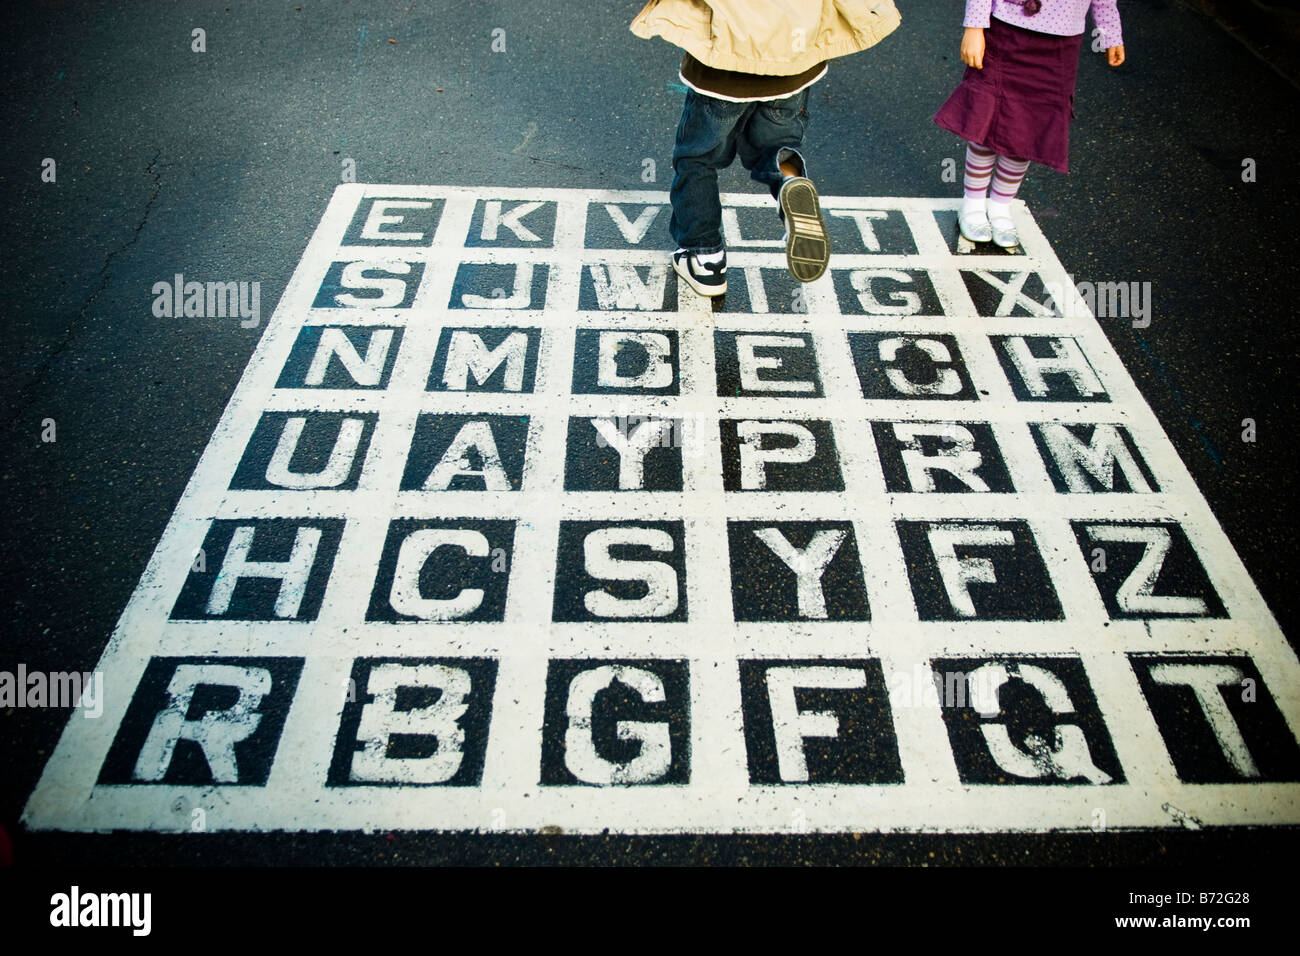 Kids play on an asphalt alphabet game in the school yard. - Stock Image